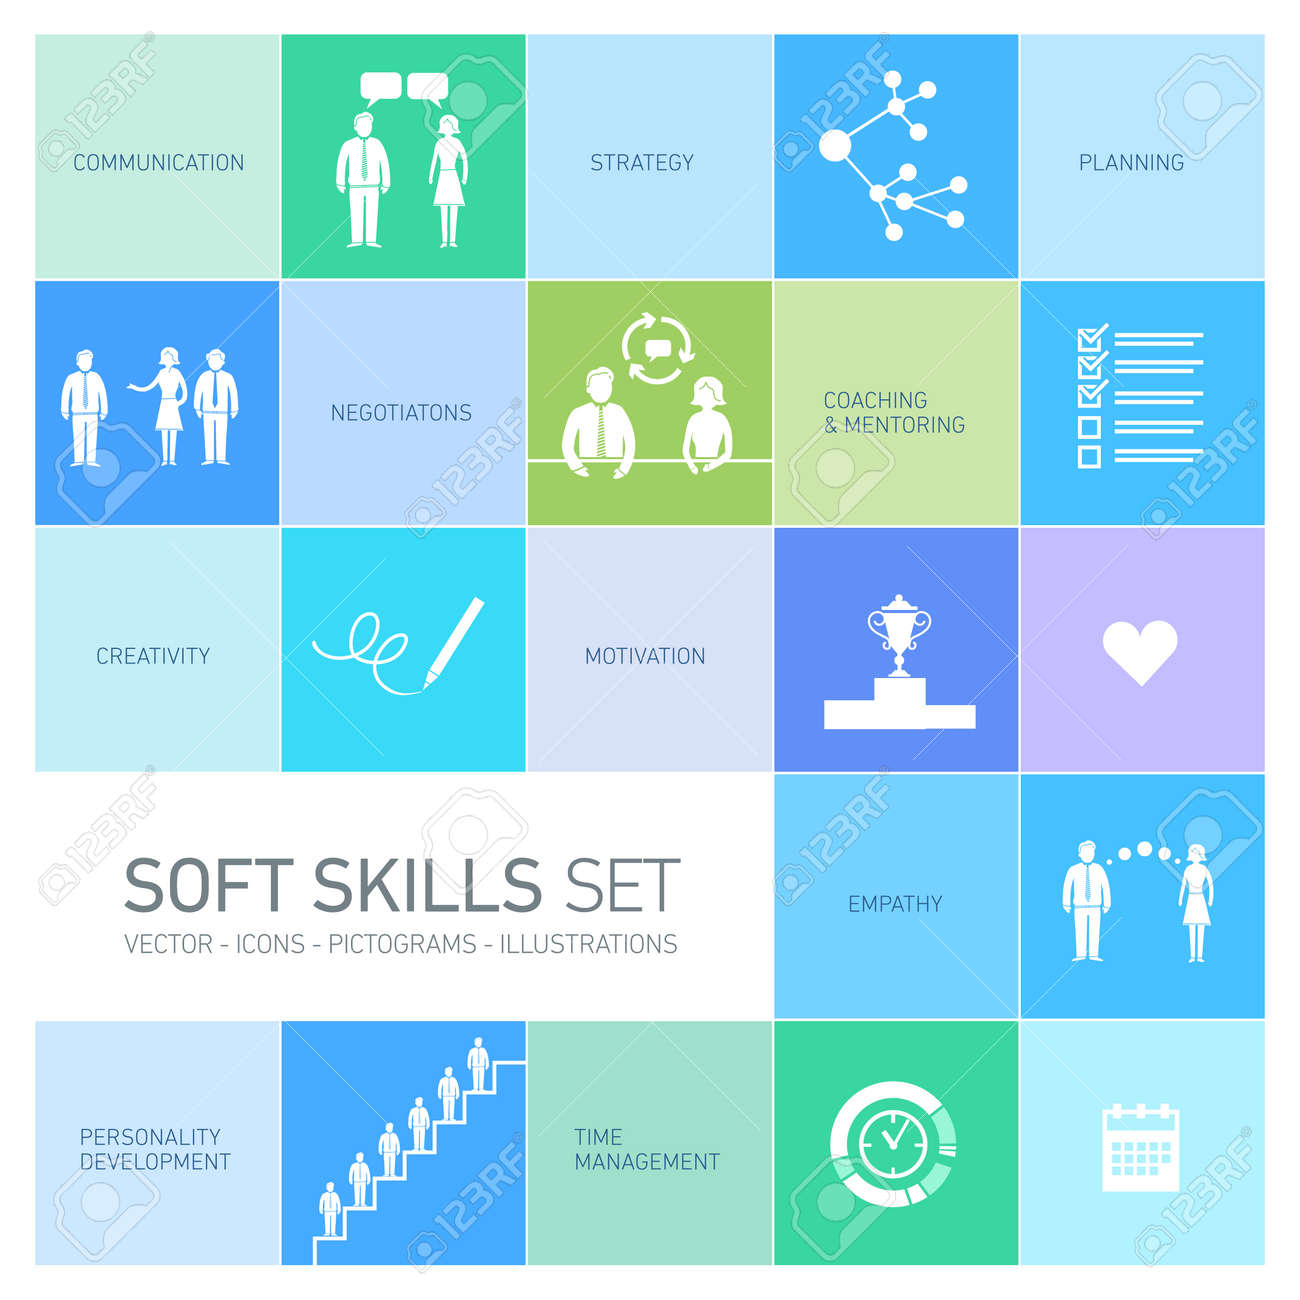 soft skills vector icons and pictograms set black on colorfulf soft skills vector icons and pictograms set black on colorfulf background stock vector 24380293